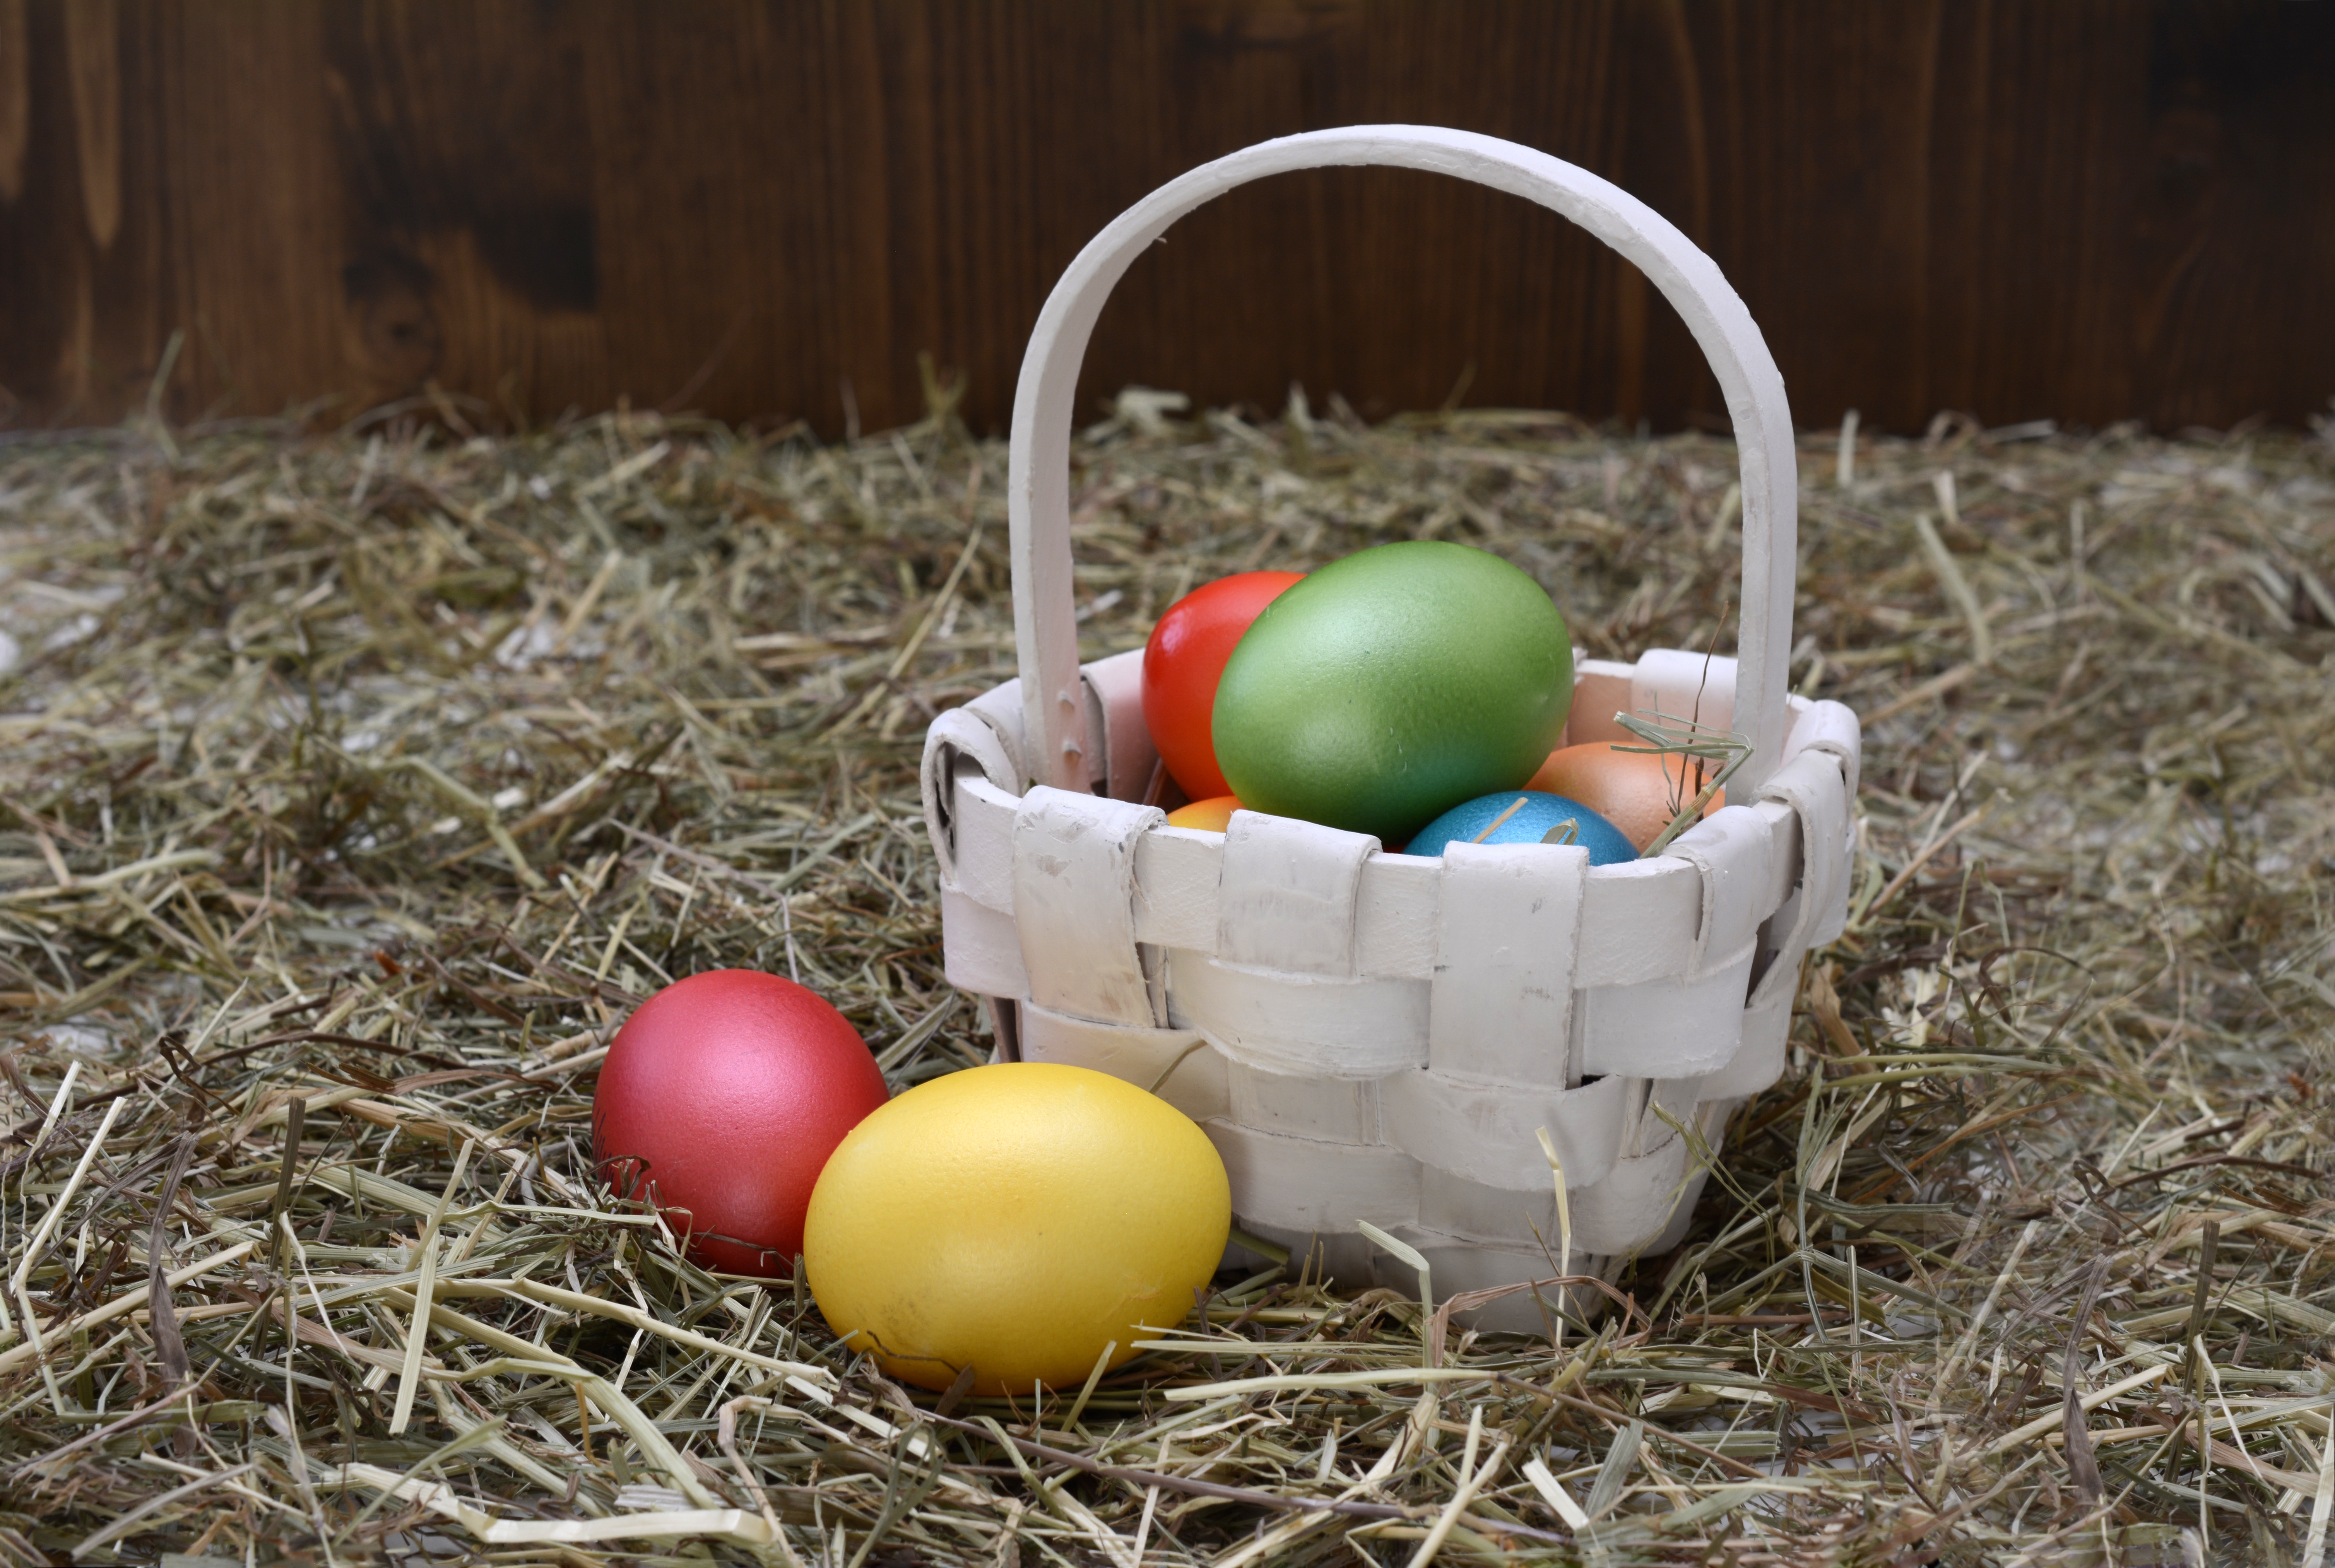 Easter egg hunt carbrooke online carbrooke pre school is organising a family easter egg hunt on the village green on saturday 31st march from 1000 1400 hrs negle Choice Image